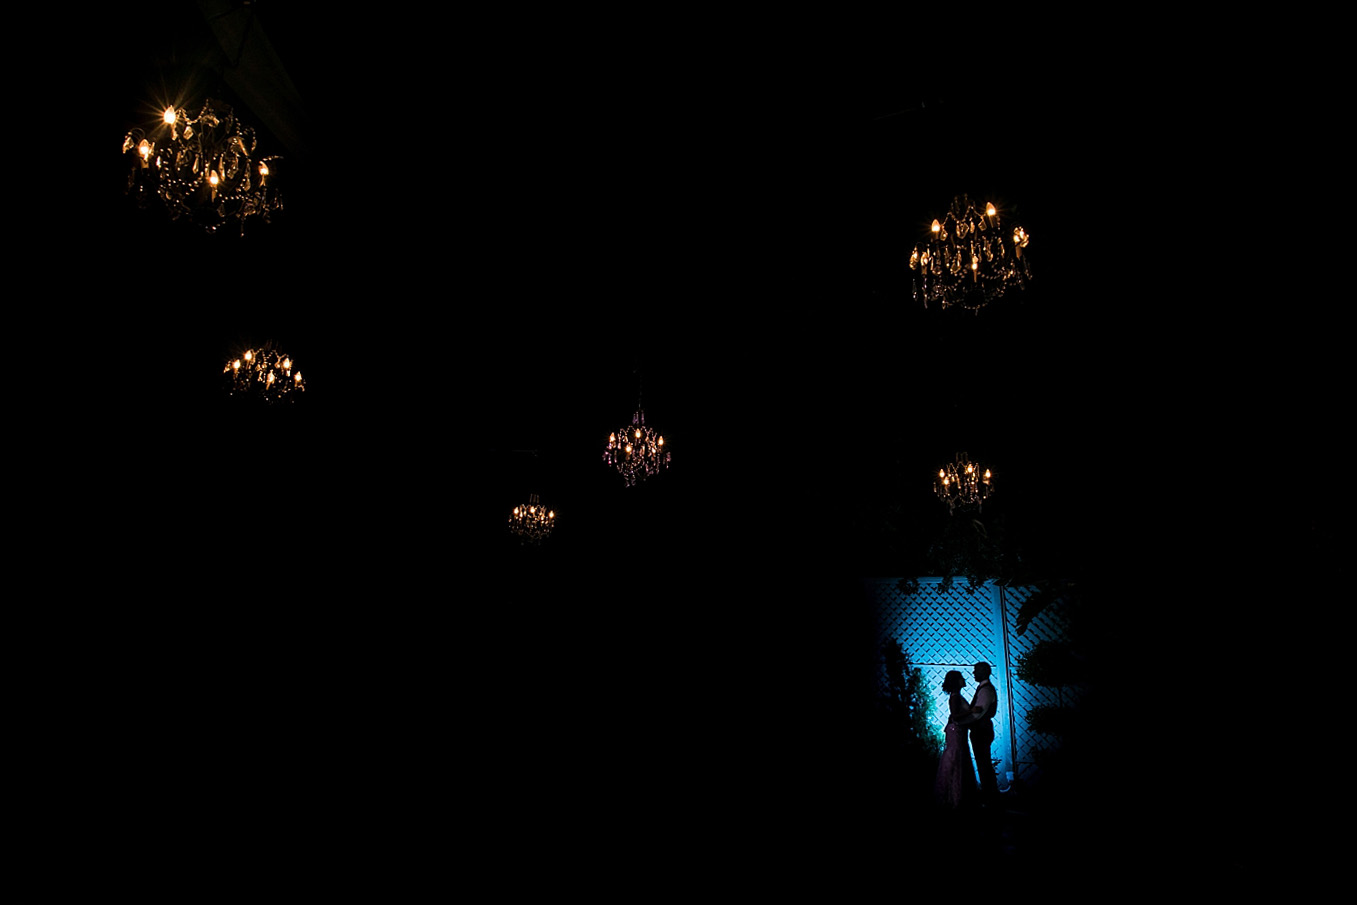 christmas house wedding bride and groom silhouette portrait under chandeliers carrie vines